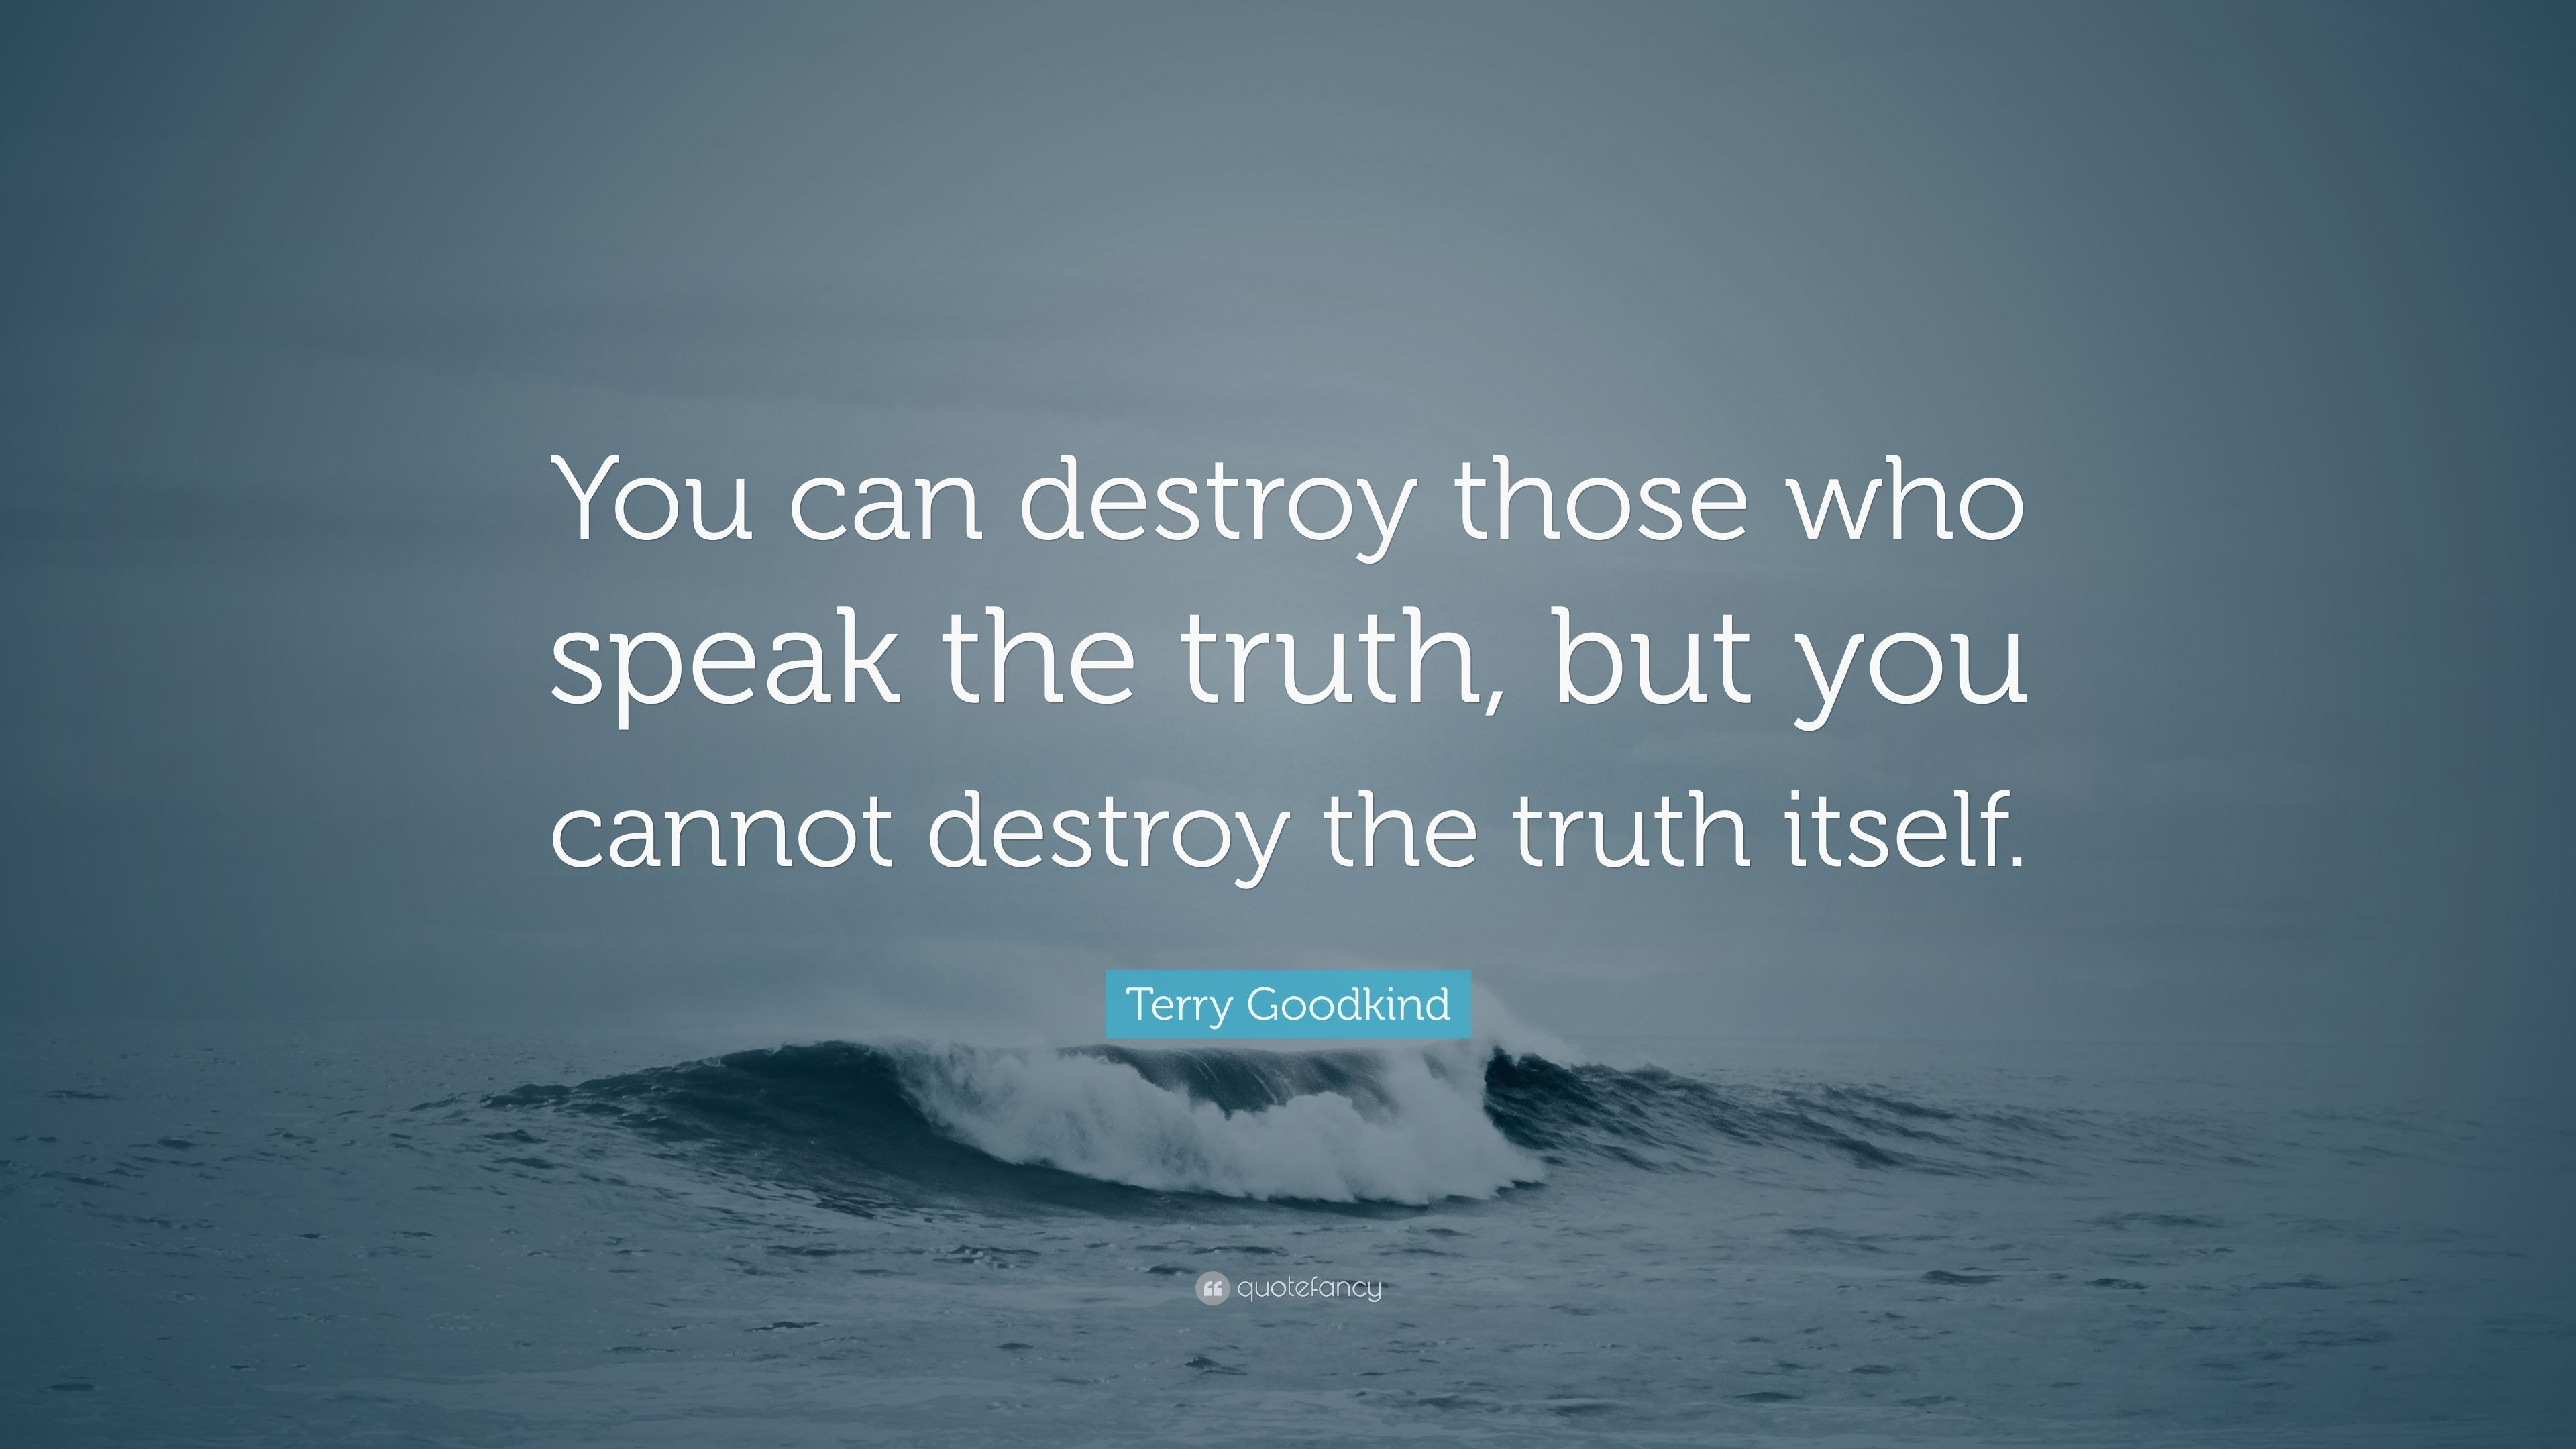 """Terry Goodkind Quote: """"You can destroy those who speak the truth, but you  cannot destroy the truth itself."""" (7 wallpapers) - Quotefancy"""